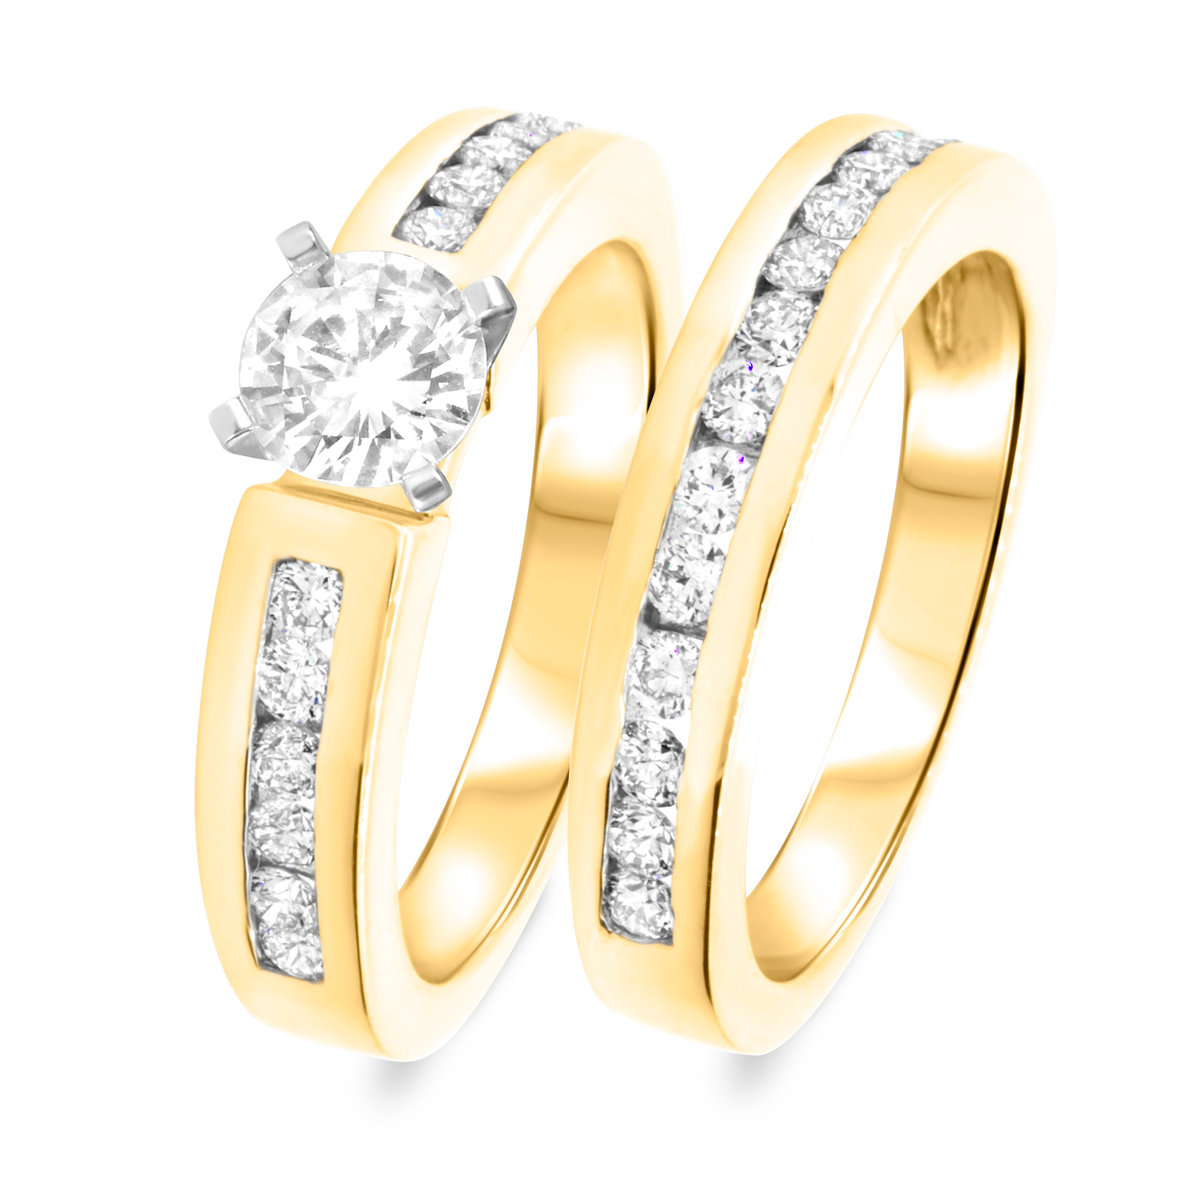 1 2/3 CT. T.W. Diamond Women's Bridal Wedding Ring Set 10K Yellow Gold